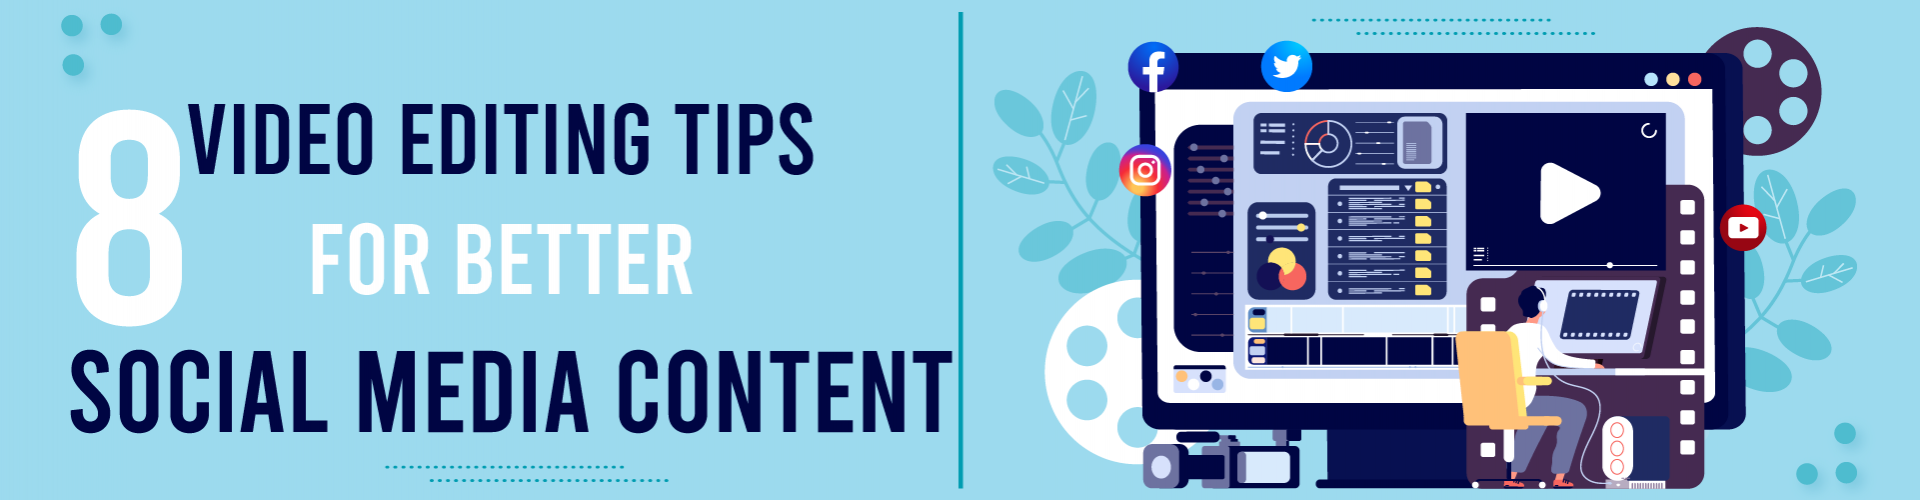 8 Video Editing Tips for Better Social Media Content